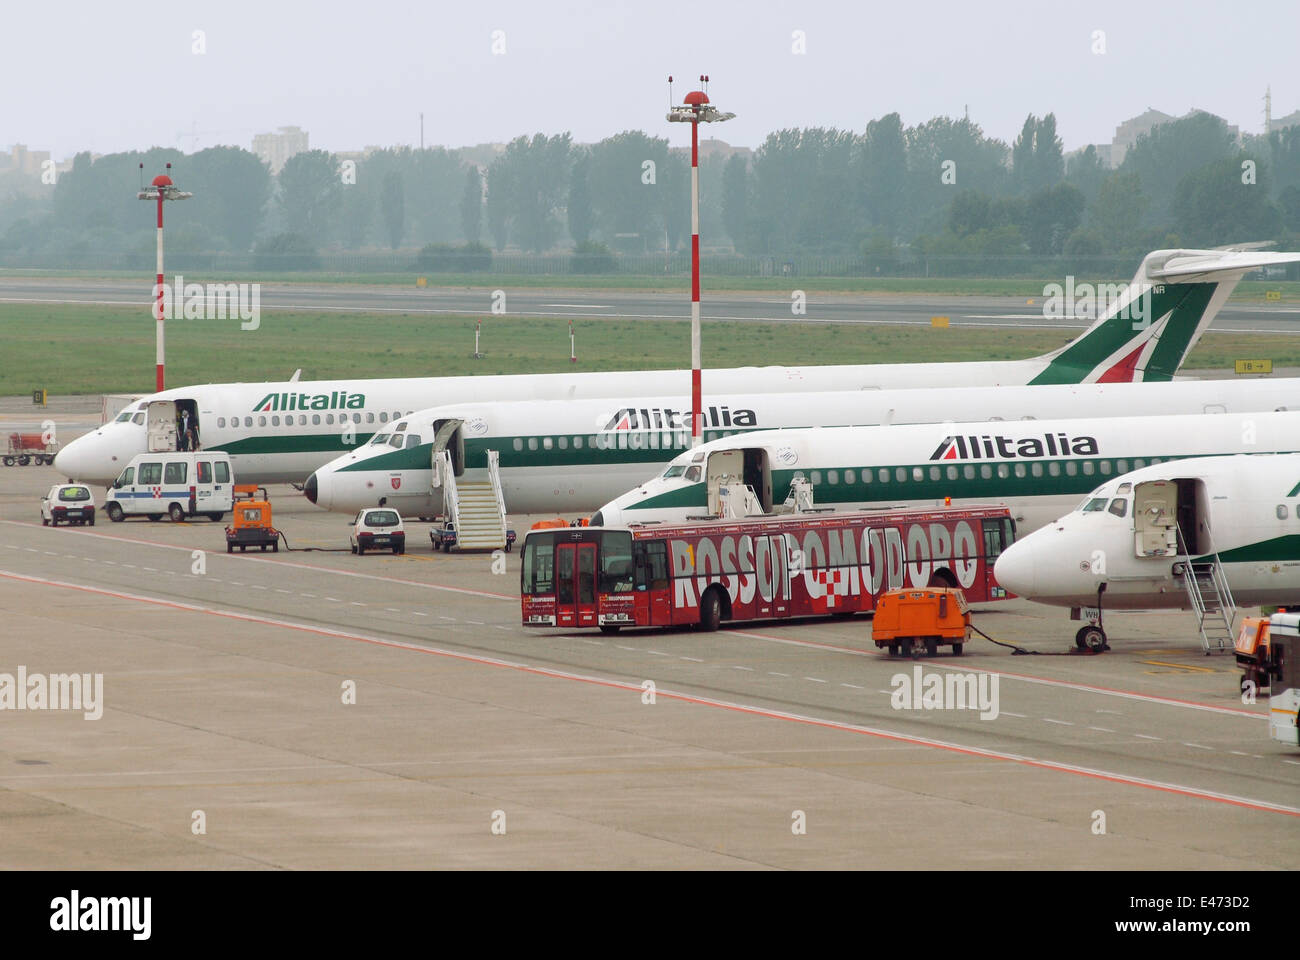 airport of Milan Linate (Italy), Alitalia airliners - Stock Image